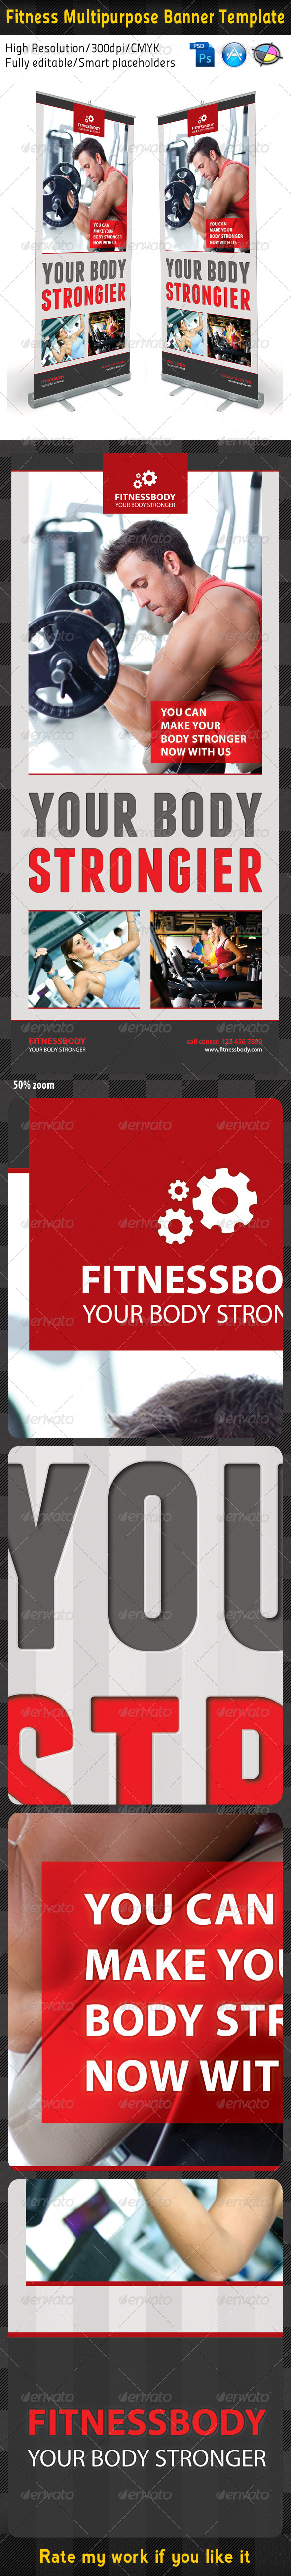 Fitness Multipurpose Banner Template - Signage Print Templates